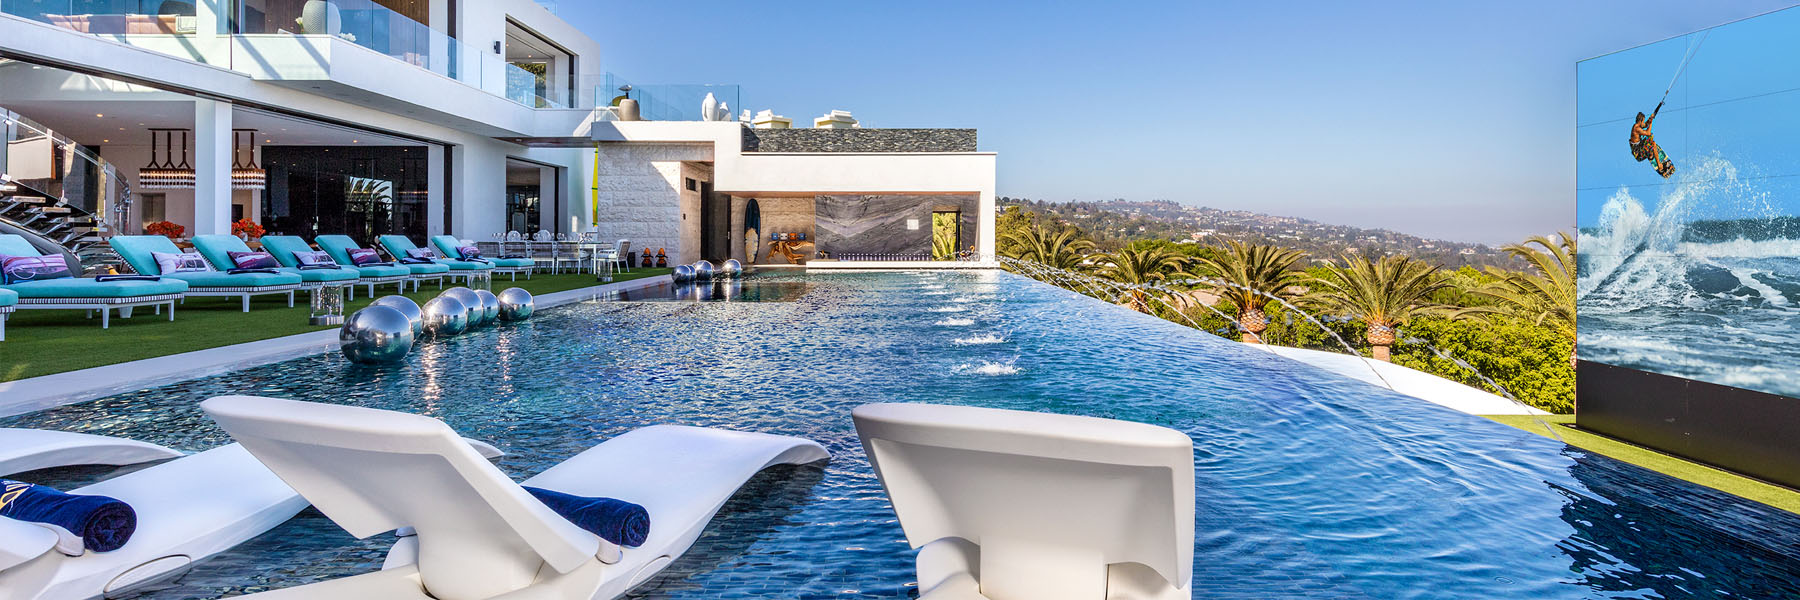 Modern Billionaire Luxury Home 924 Bel Air Road 12